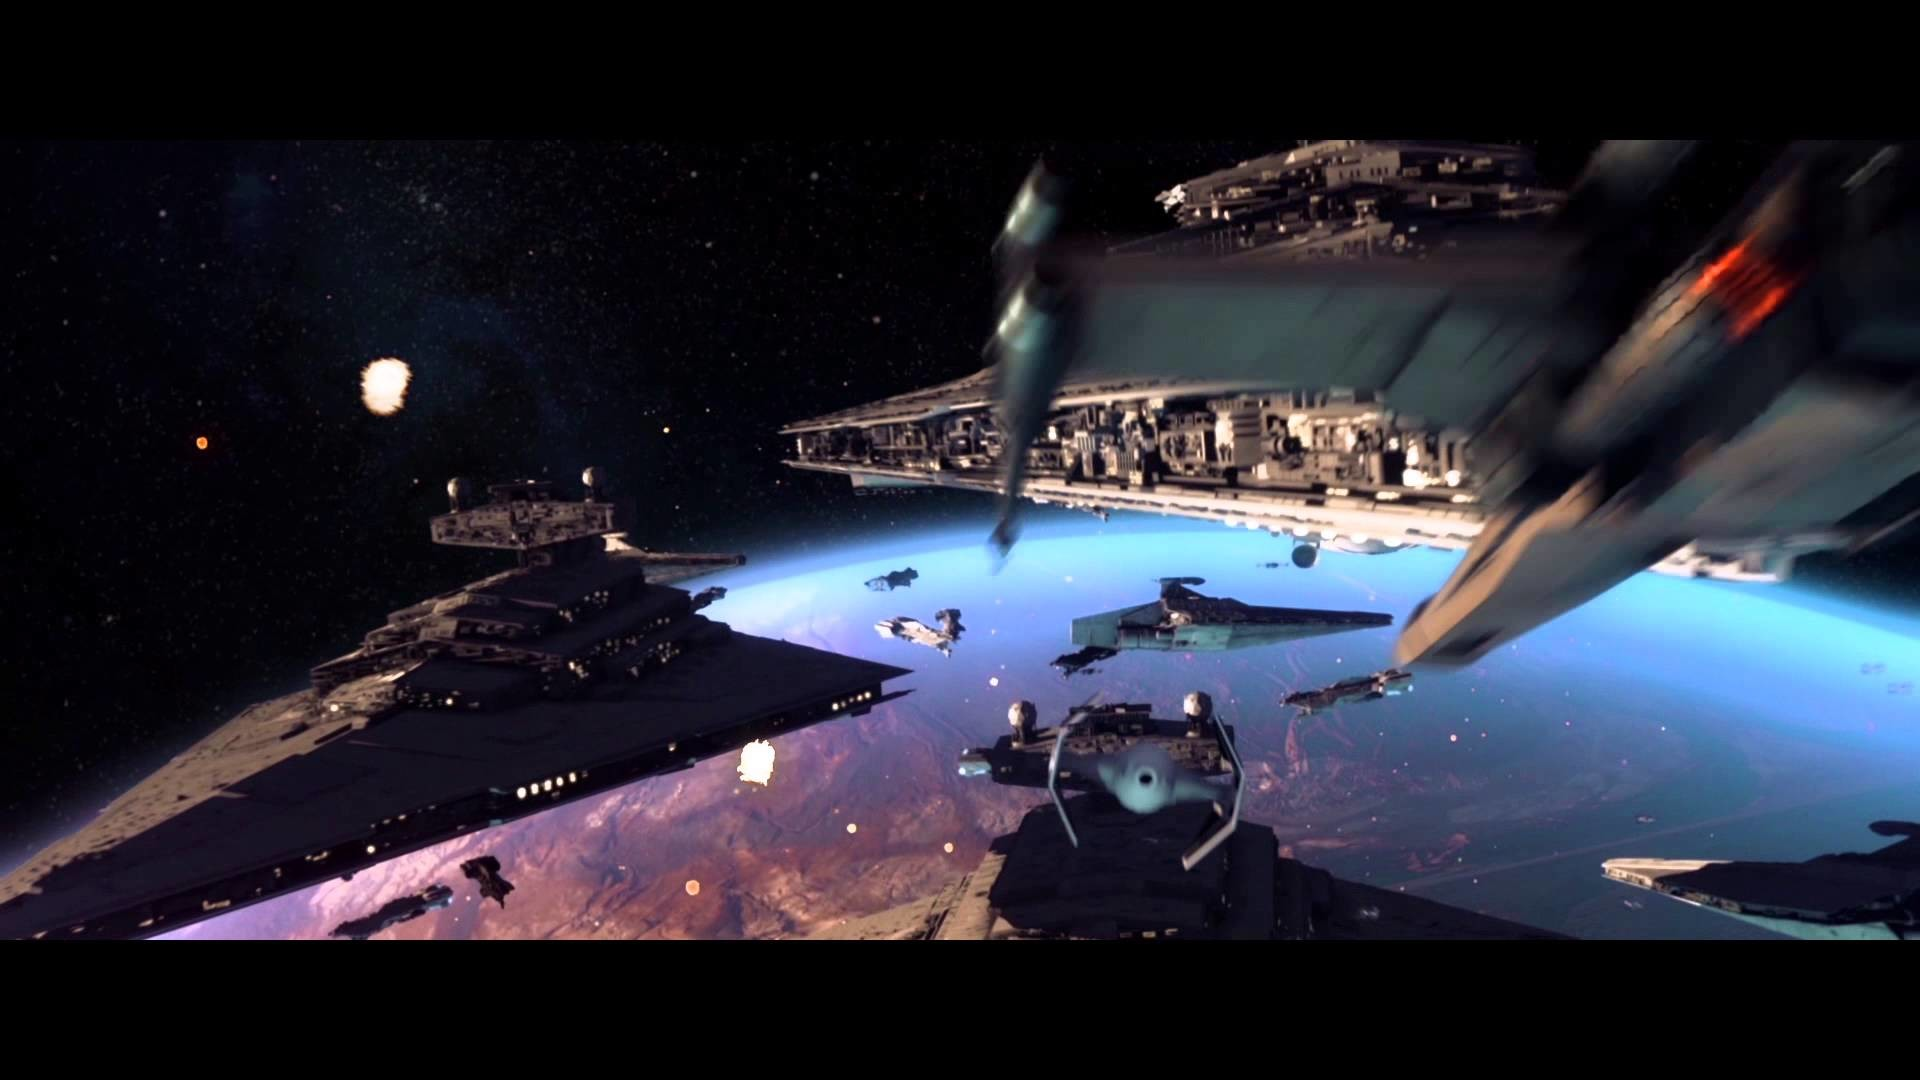 Free Download Epic Space Battles Wallpaper 75 Images 1920x1080 For Your Desktop Mobile Tablet Explore 50 Space Battle Wallpapers Space Battle Wallpapers Space Battle Wallpaper Halo Space Battle Wallpaper